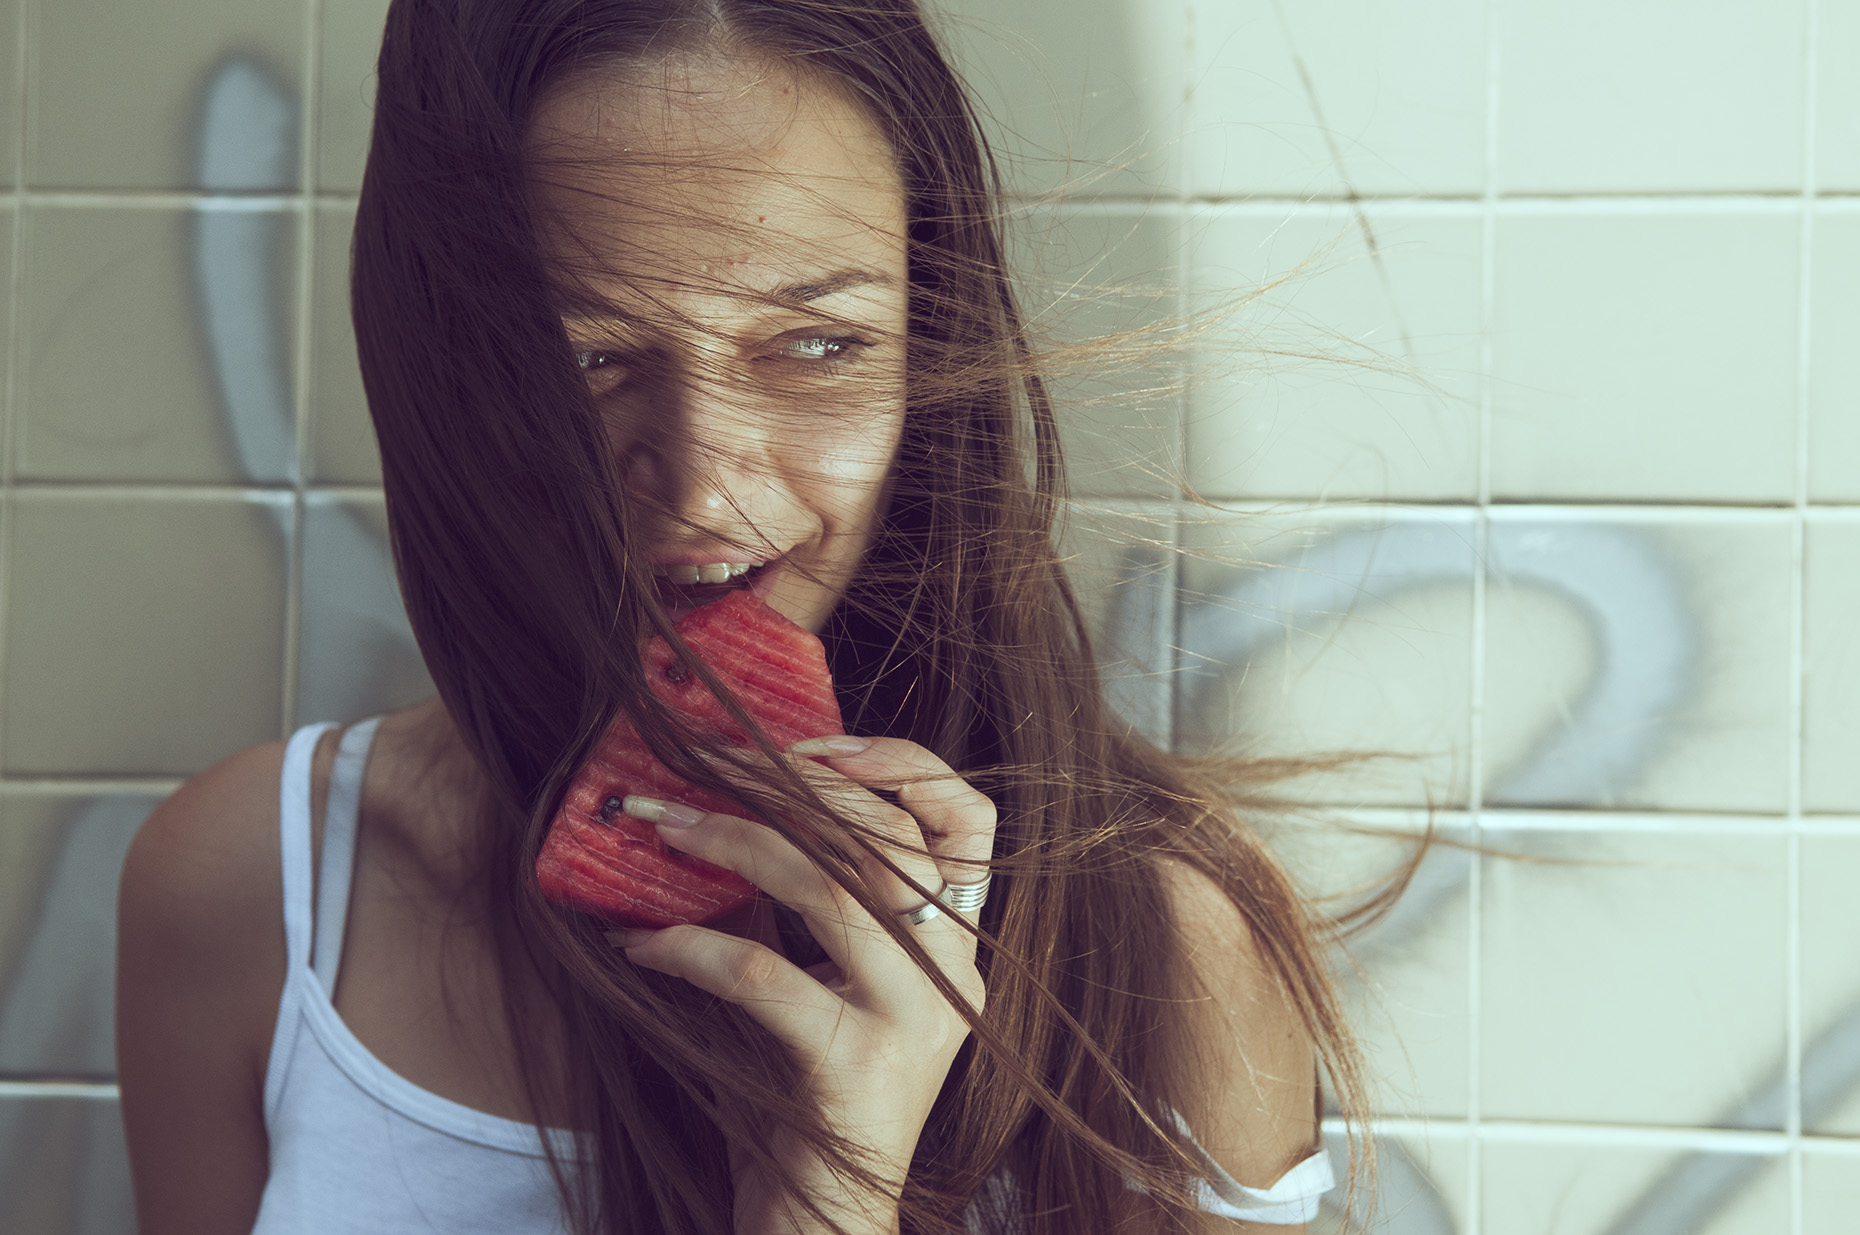 Fashion Photo of a lady eating watermelon